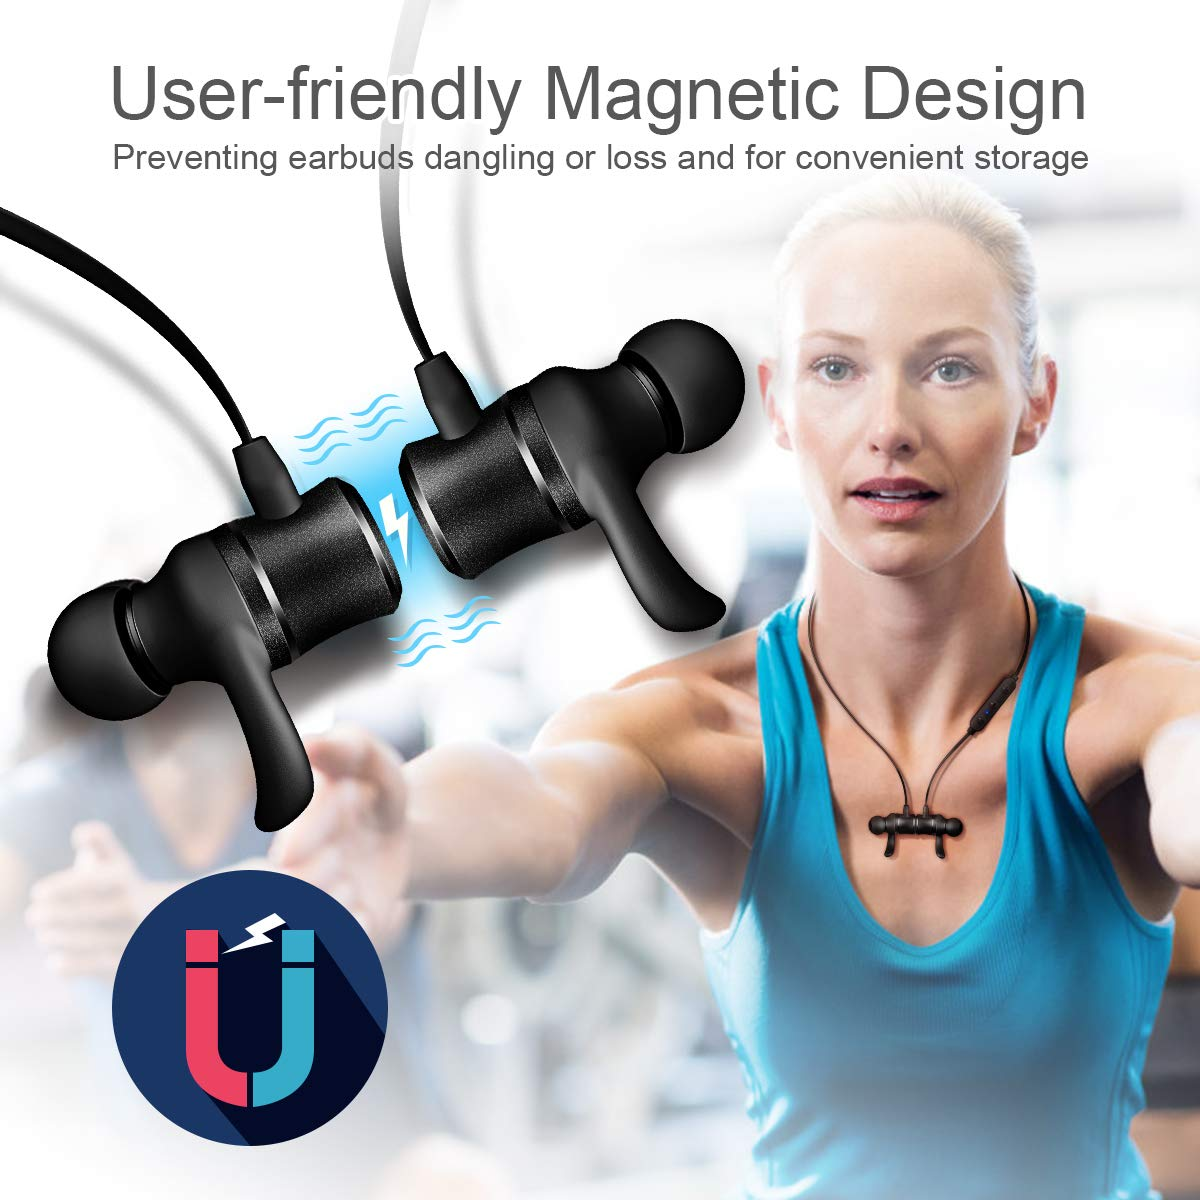 iTeknic Bluetooth Headphones Neckband Magnetic Wireless in-Ear Earbuds Sports Sweatproof Lightweight Earphones for Running Gym with Mic(24 Hours Play Time, Bluetooth 5.0, IPX4, DSP Noise Canceling)